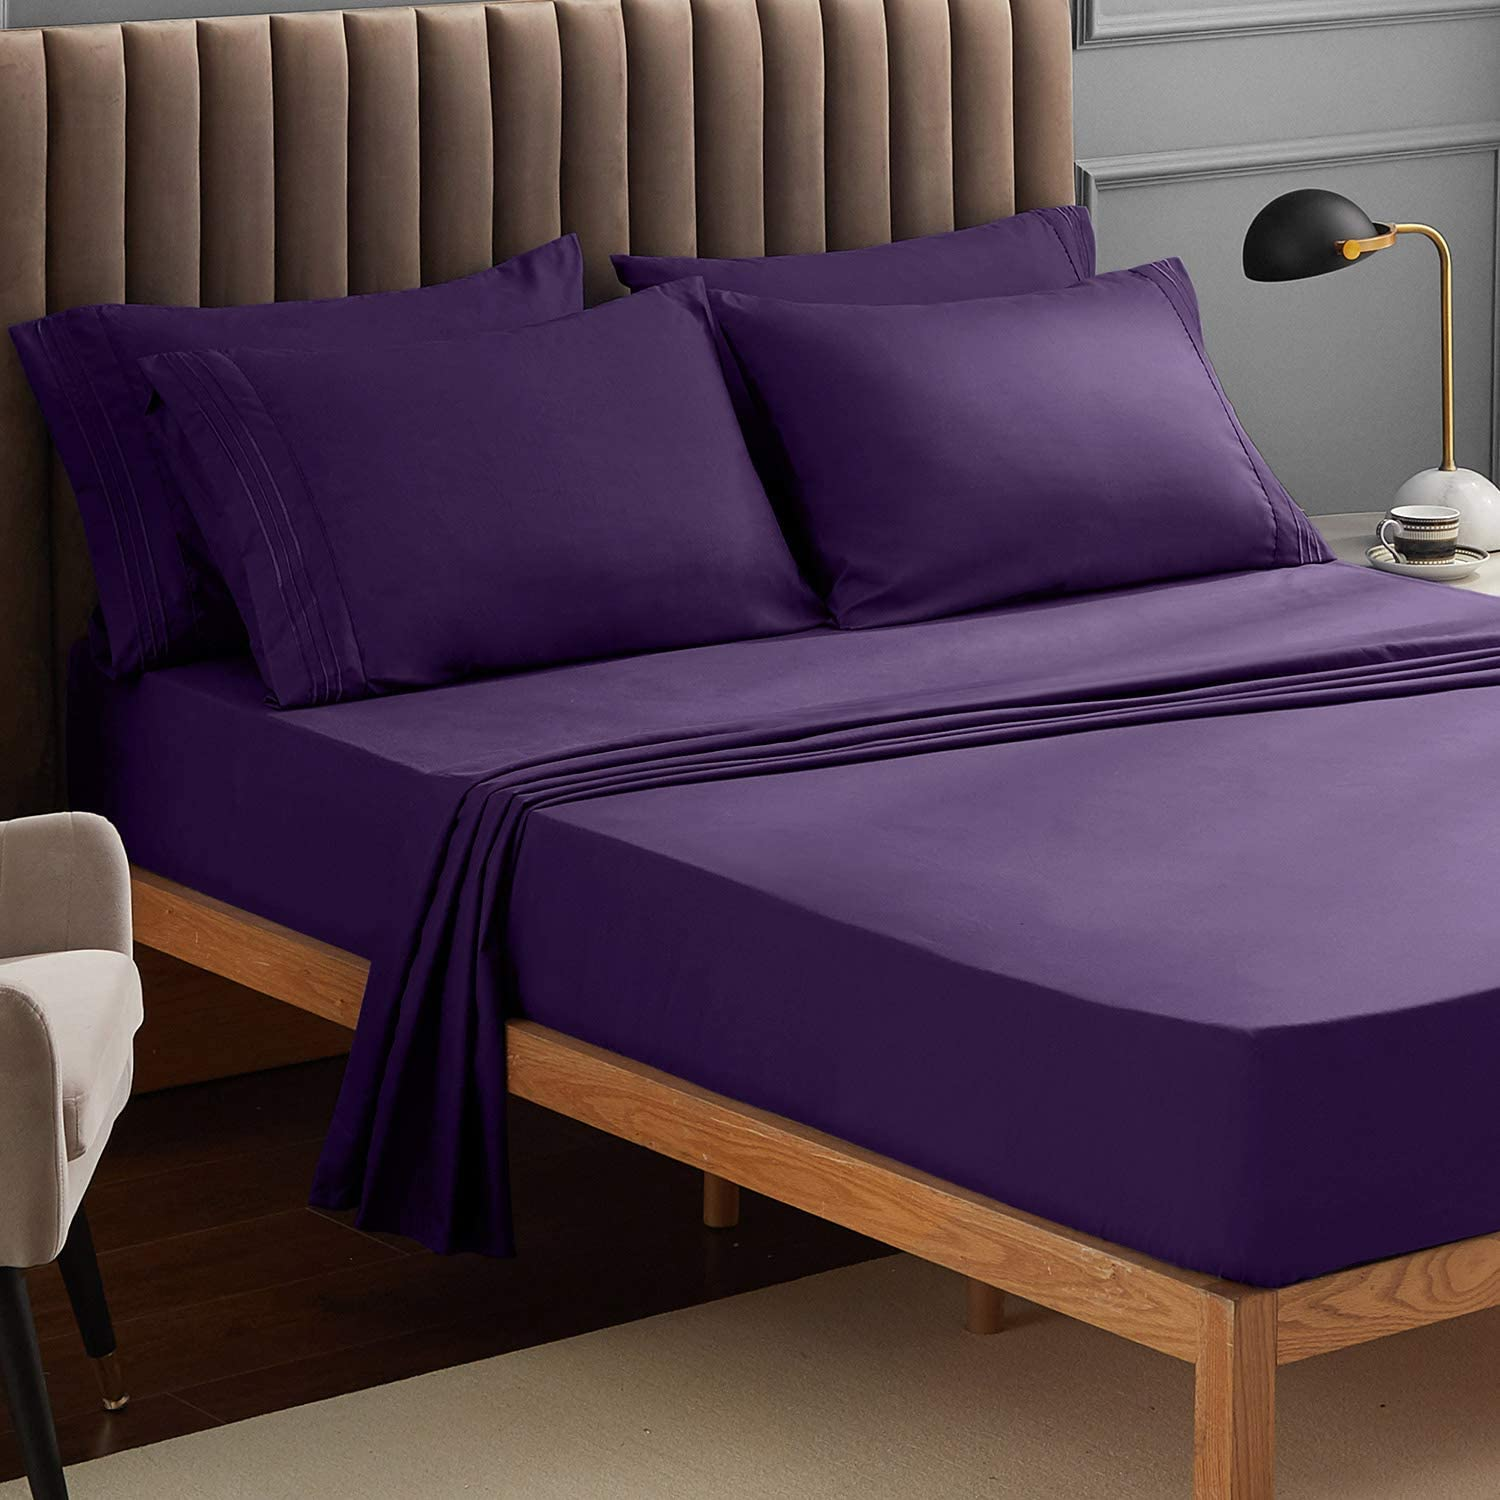 VEEYOO Bed Sheet Twin XL - Purple Fitted Sheets Set Deep Pocket, Luxury 1800 Brushed Microfiber Bed Set Extra Soft, Wrinkle, Fade, Stain Resistant, Breathable, Hypoallergenic - 3 Piece, Purple